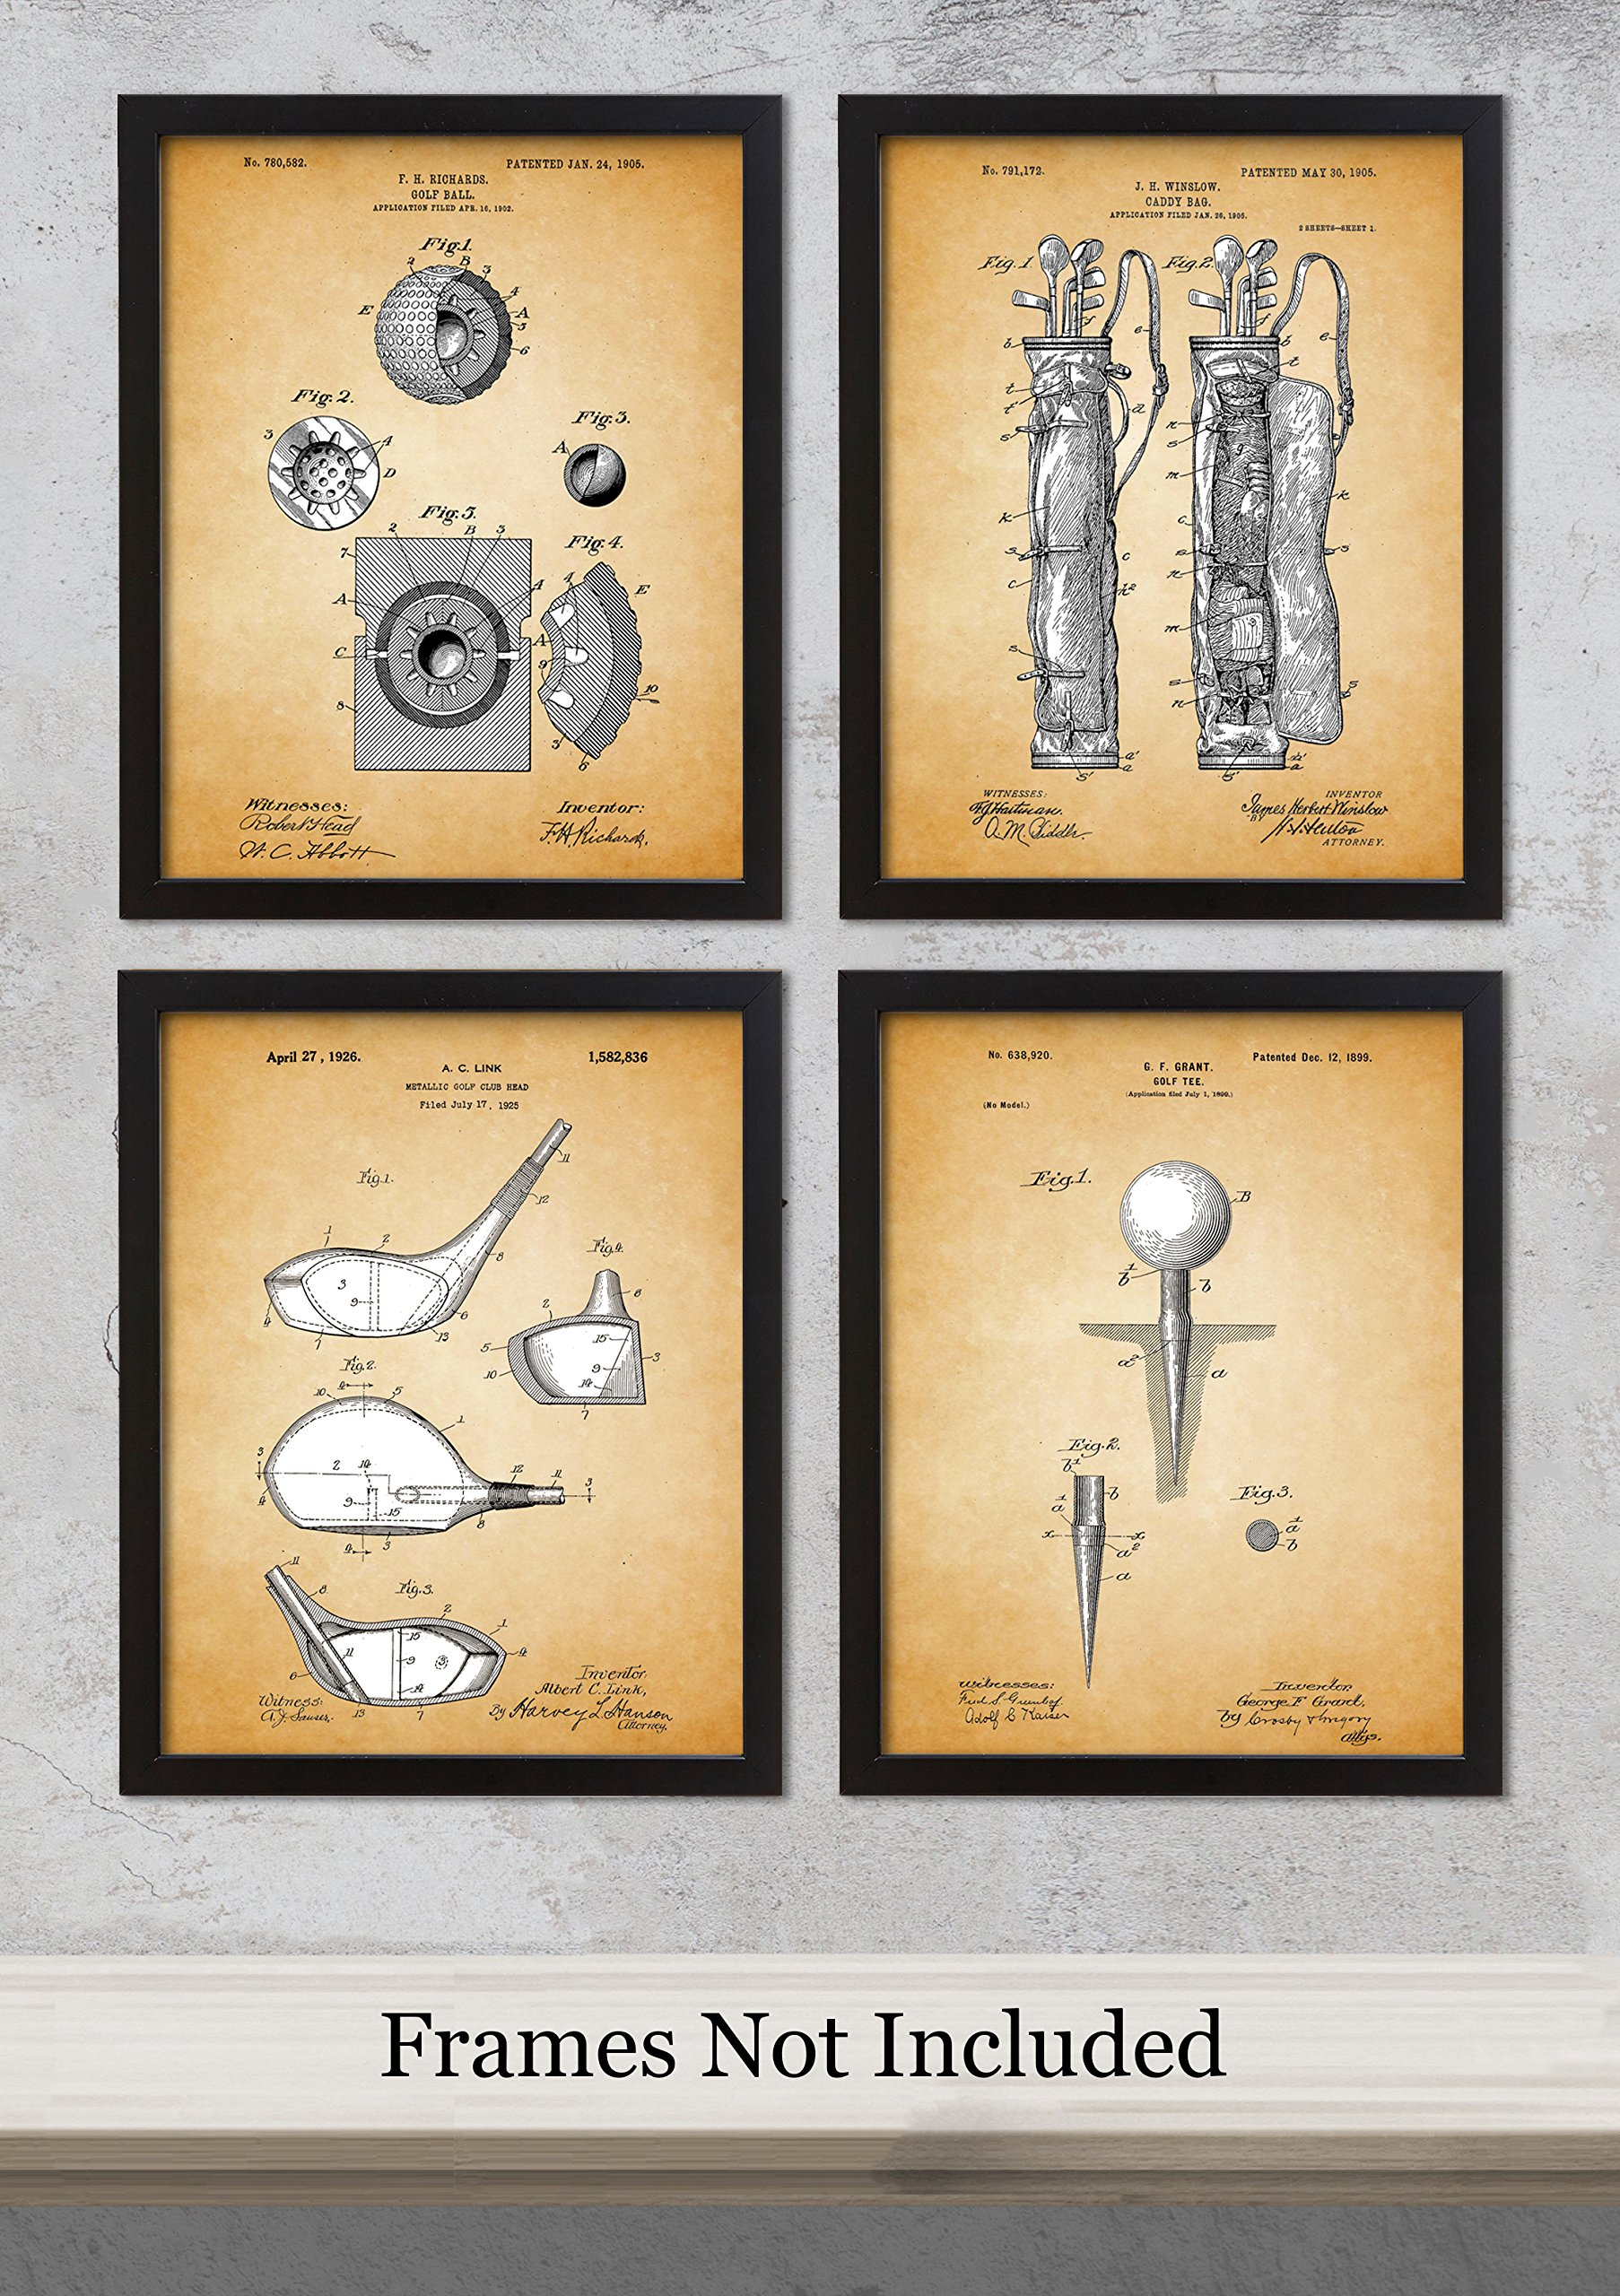 Qi Tribe Home - Vintage Golf Patent Unframed Art Prints: Set of Four Photos (8x10) – Great Gift Idea for the Golf Fans! by Qi Laces